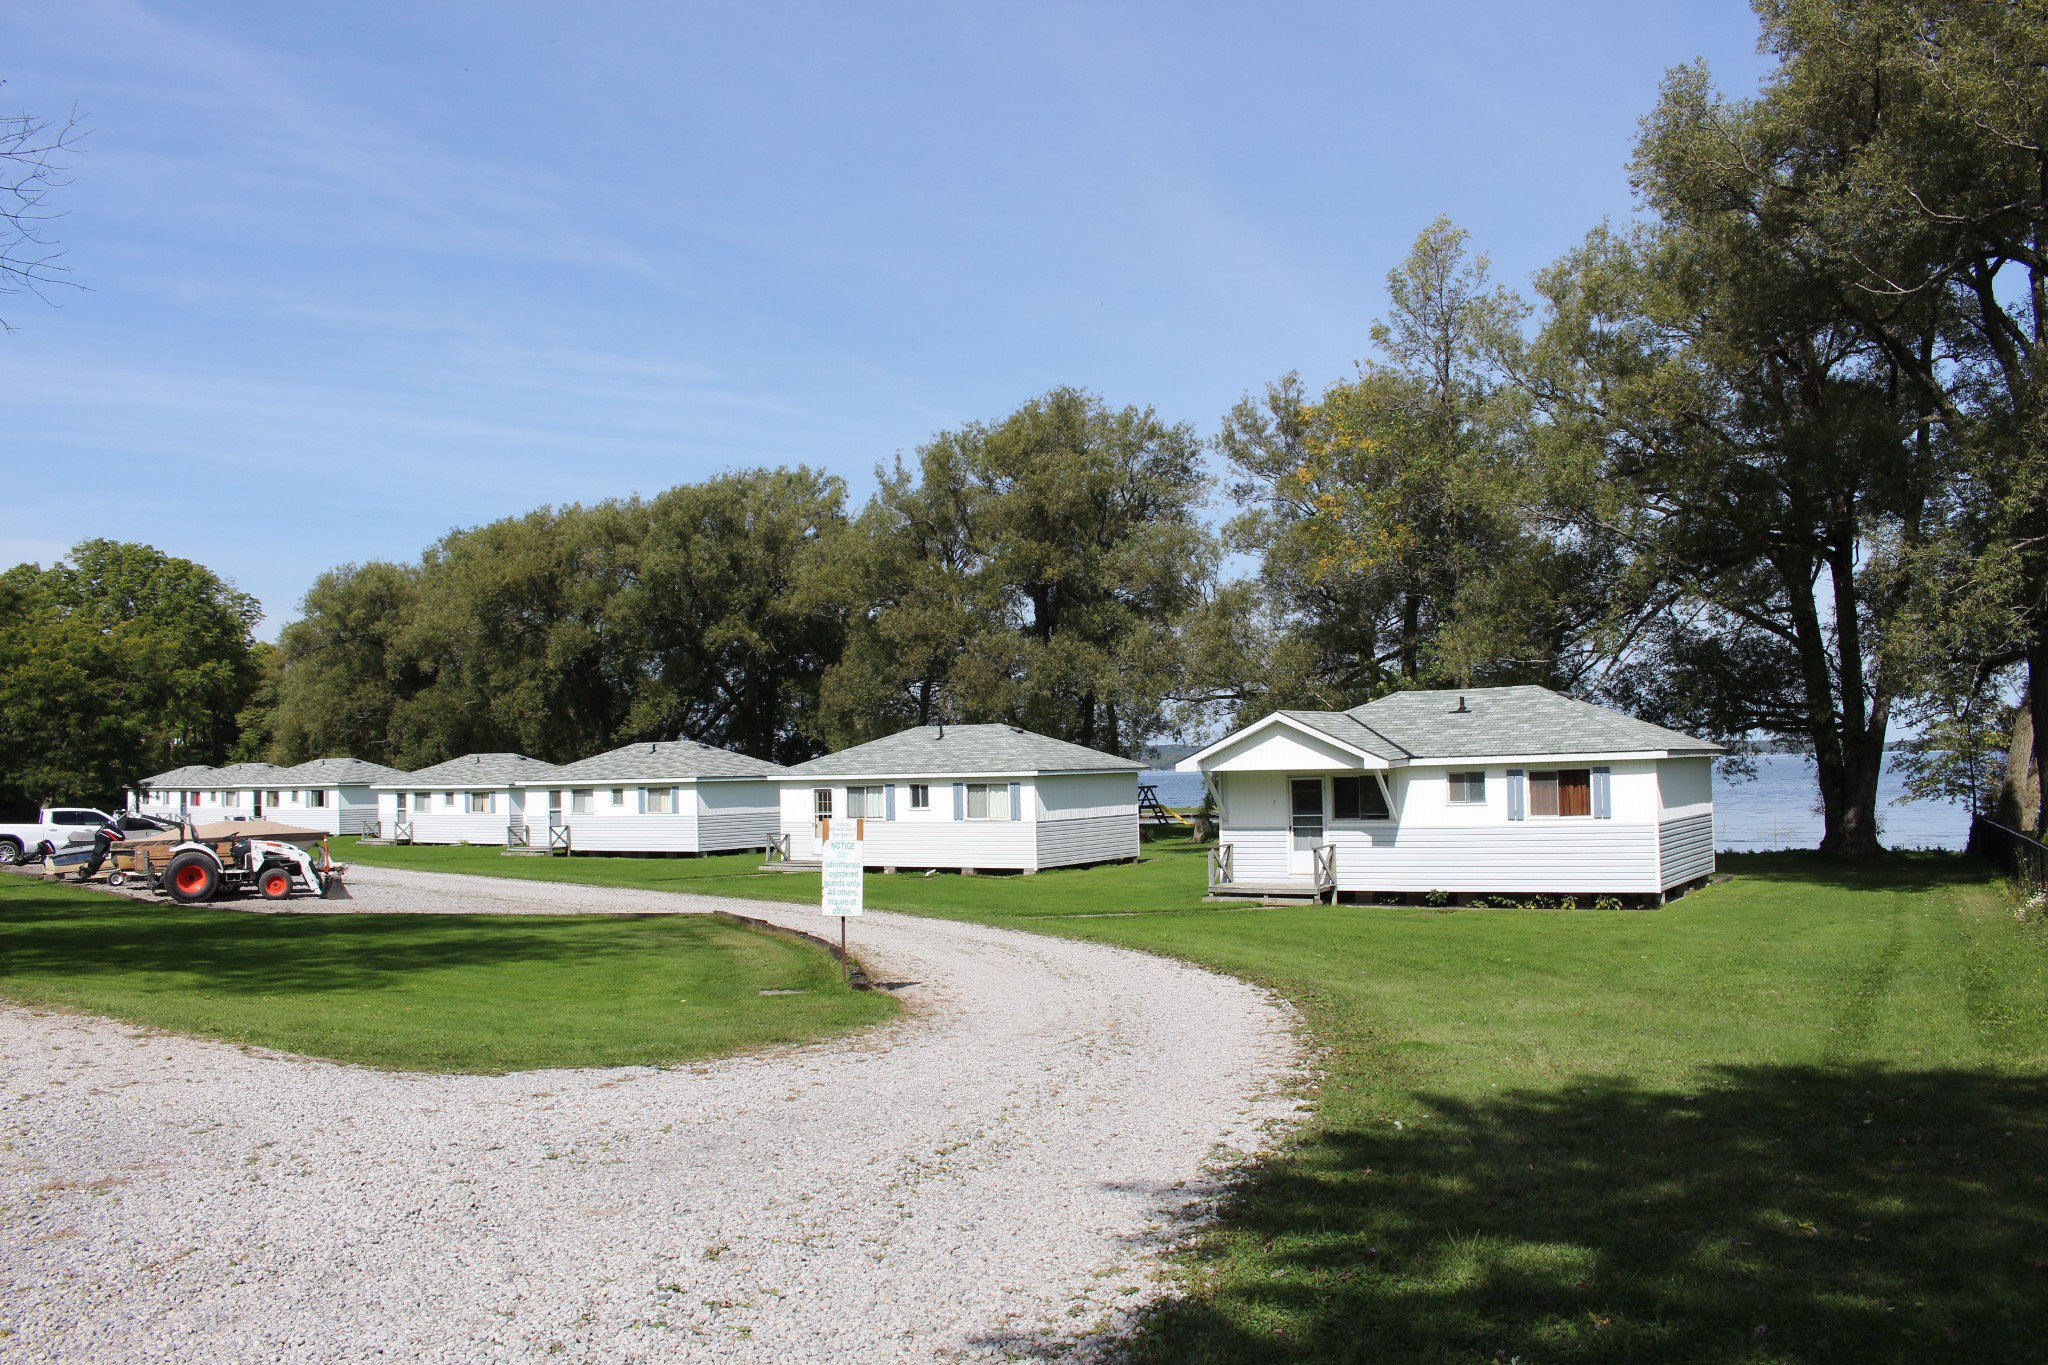 Photo 28: Photos: 6010 Rice Lake Scenic Drive in Harwood: Other for sale : MLS®# 223405